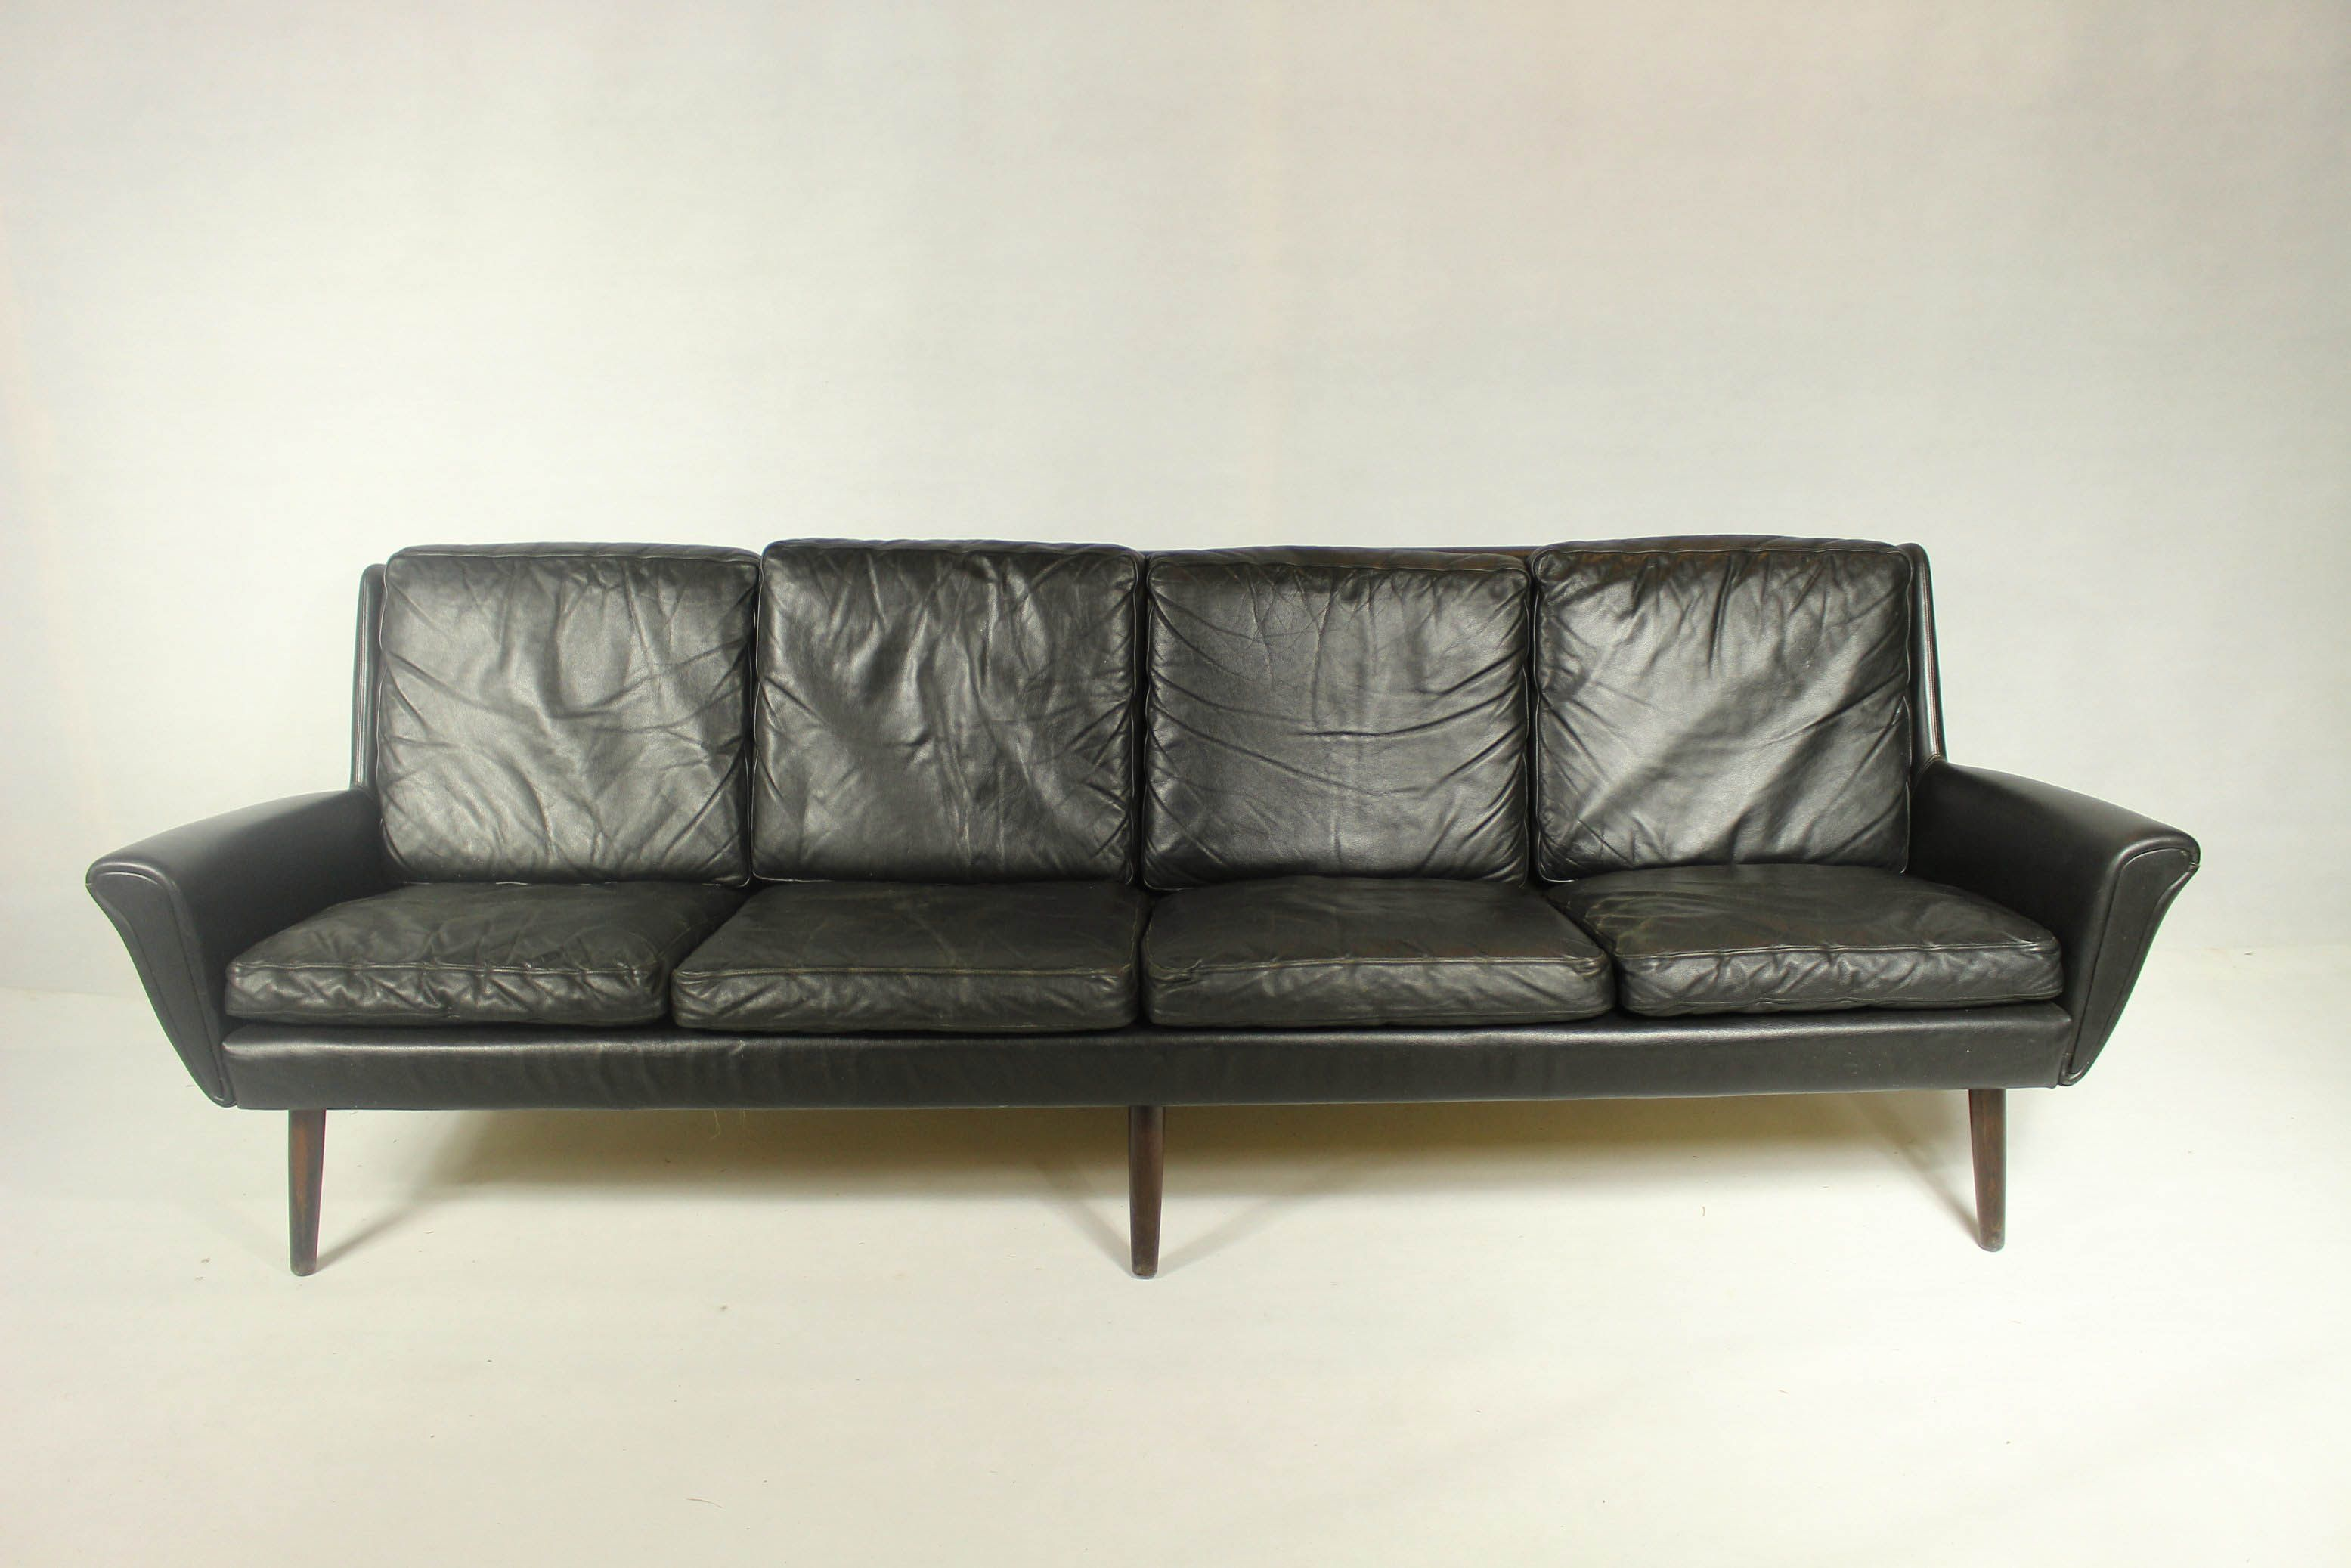 Vintage 4 Seater Sofa In Black Leather Previous Next